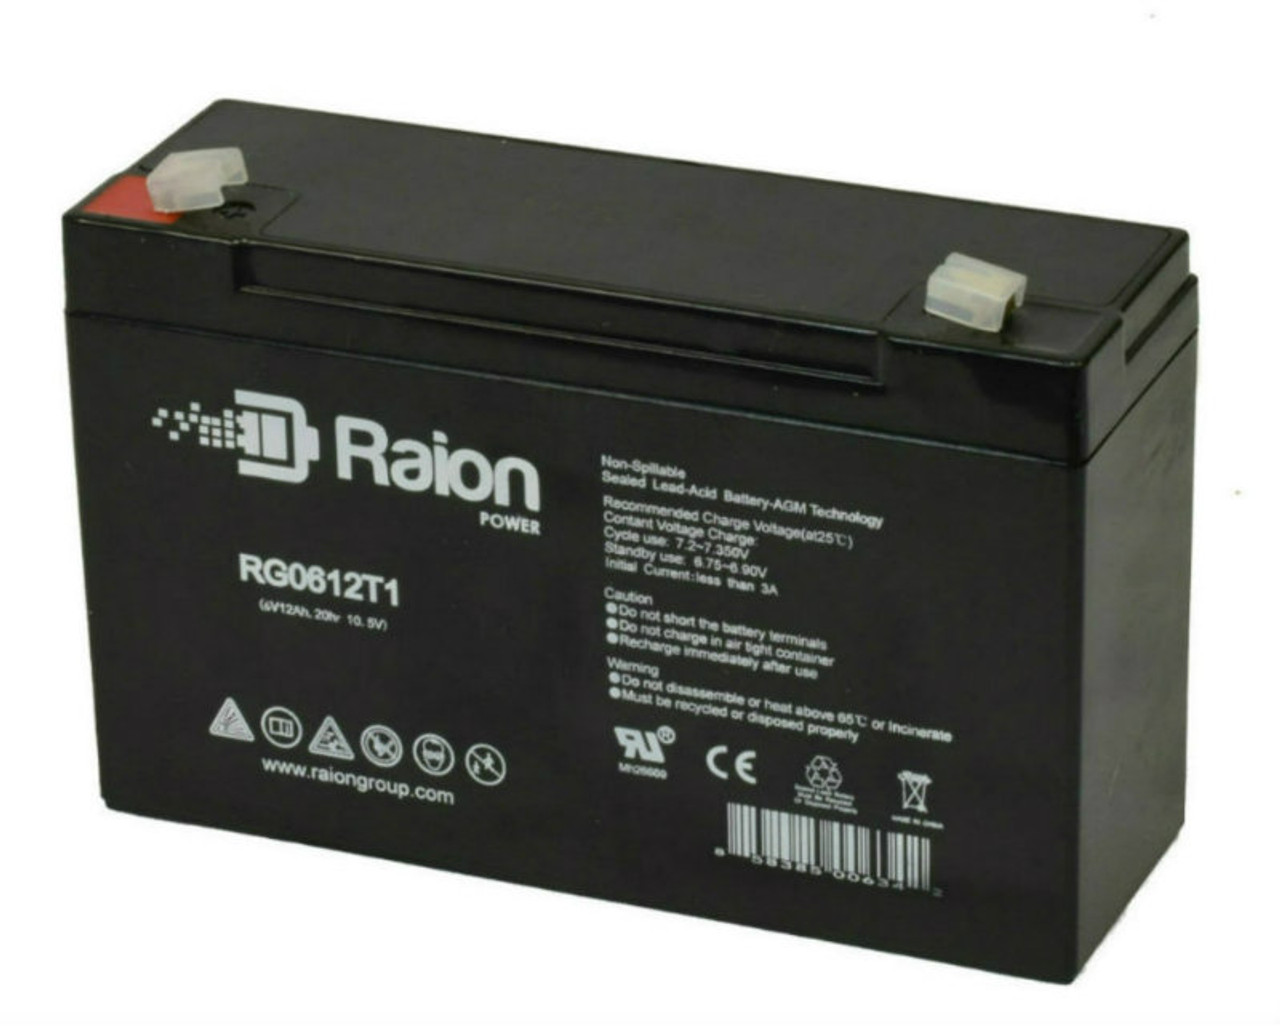 Raion Power RG06120T1 Replacement Battery Pack for Elan ST2A emergency light